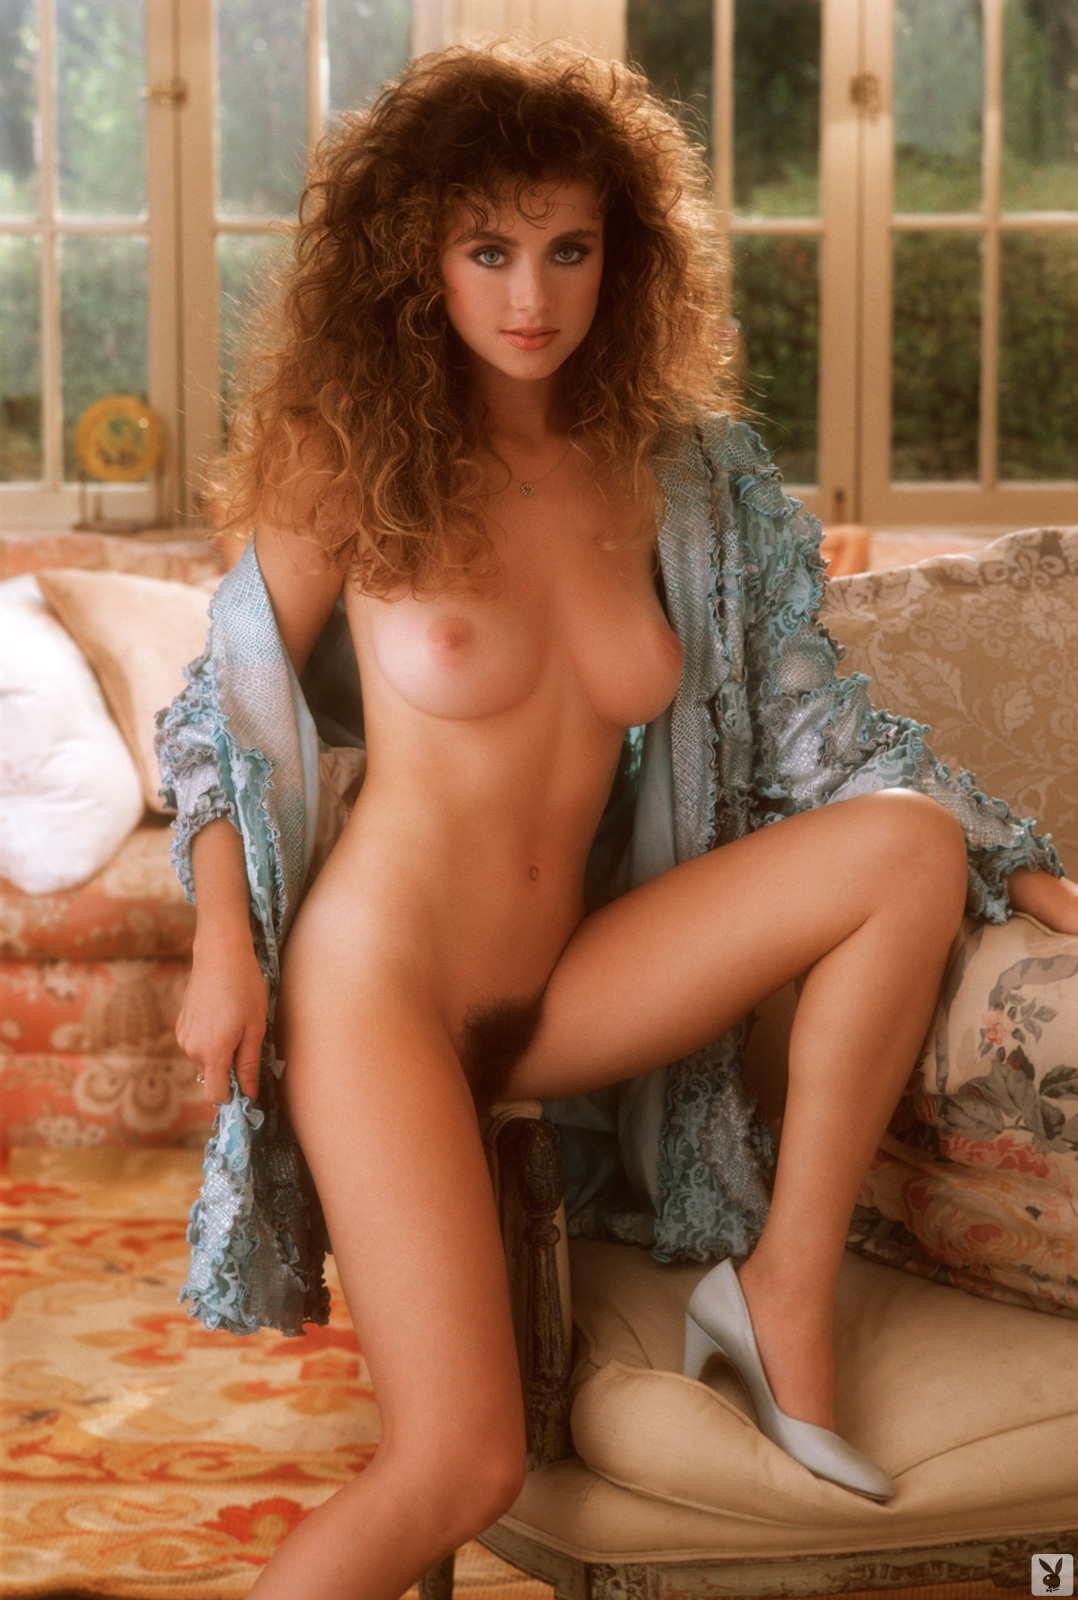 Retro playboy pictures